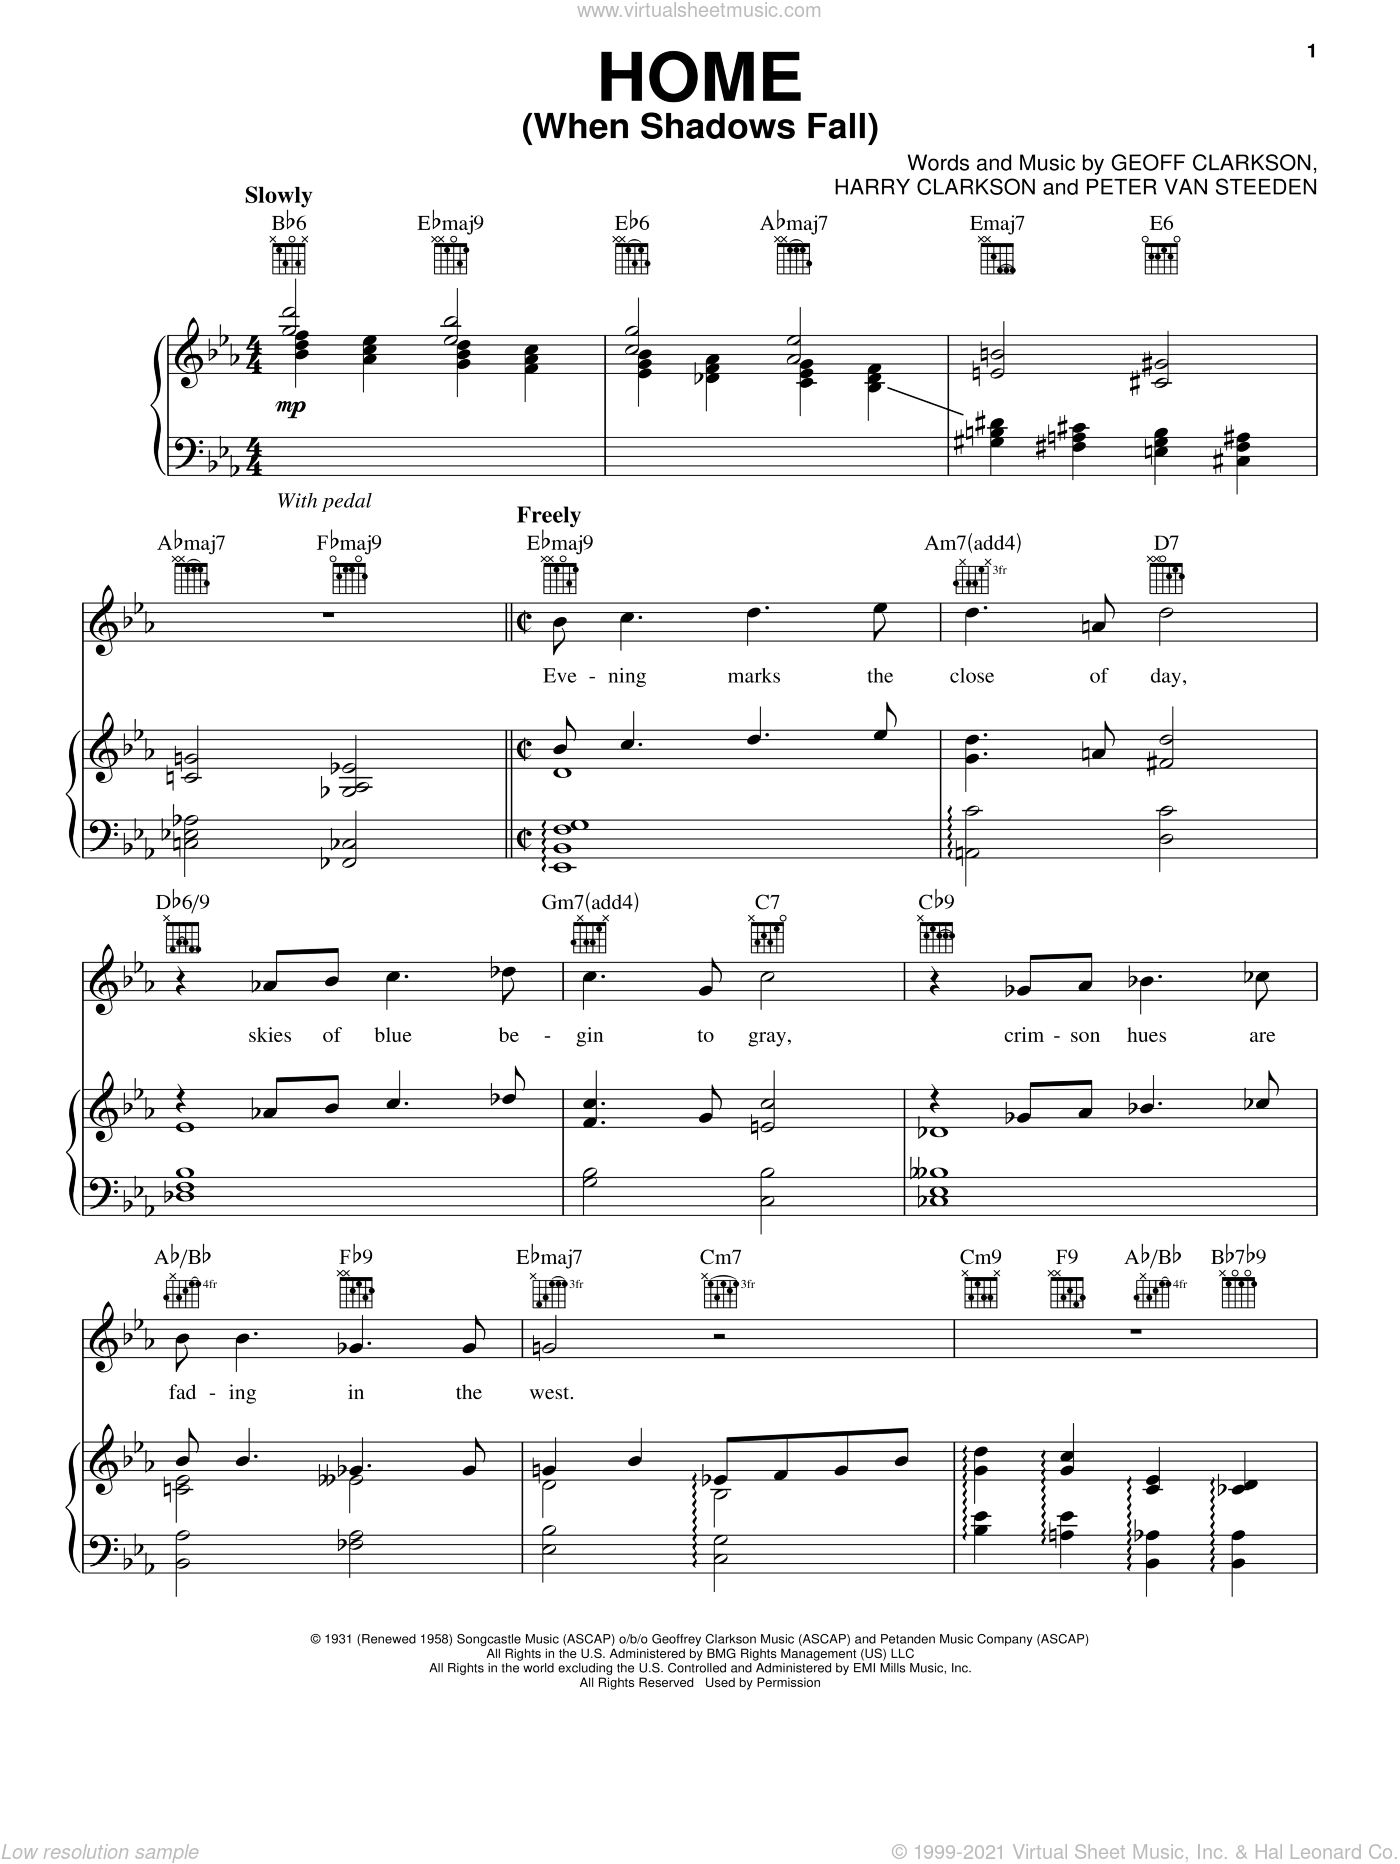 Home (When Shadows Fall) sheet music for voice, piano or guitar by Paul McCartney, Geoff Clarkson, Harry Clarkson and Peter Van Steeden, intermediate skill level